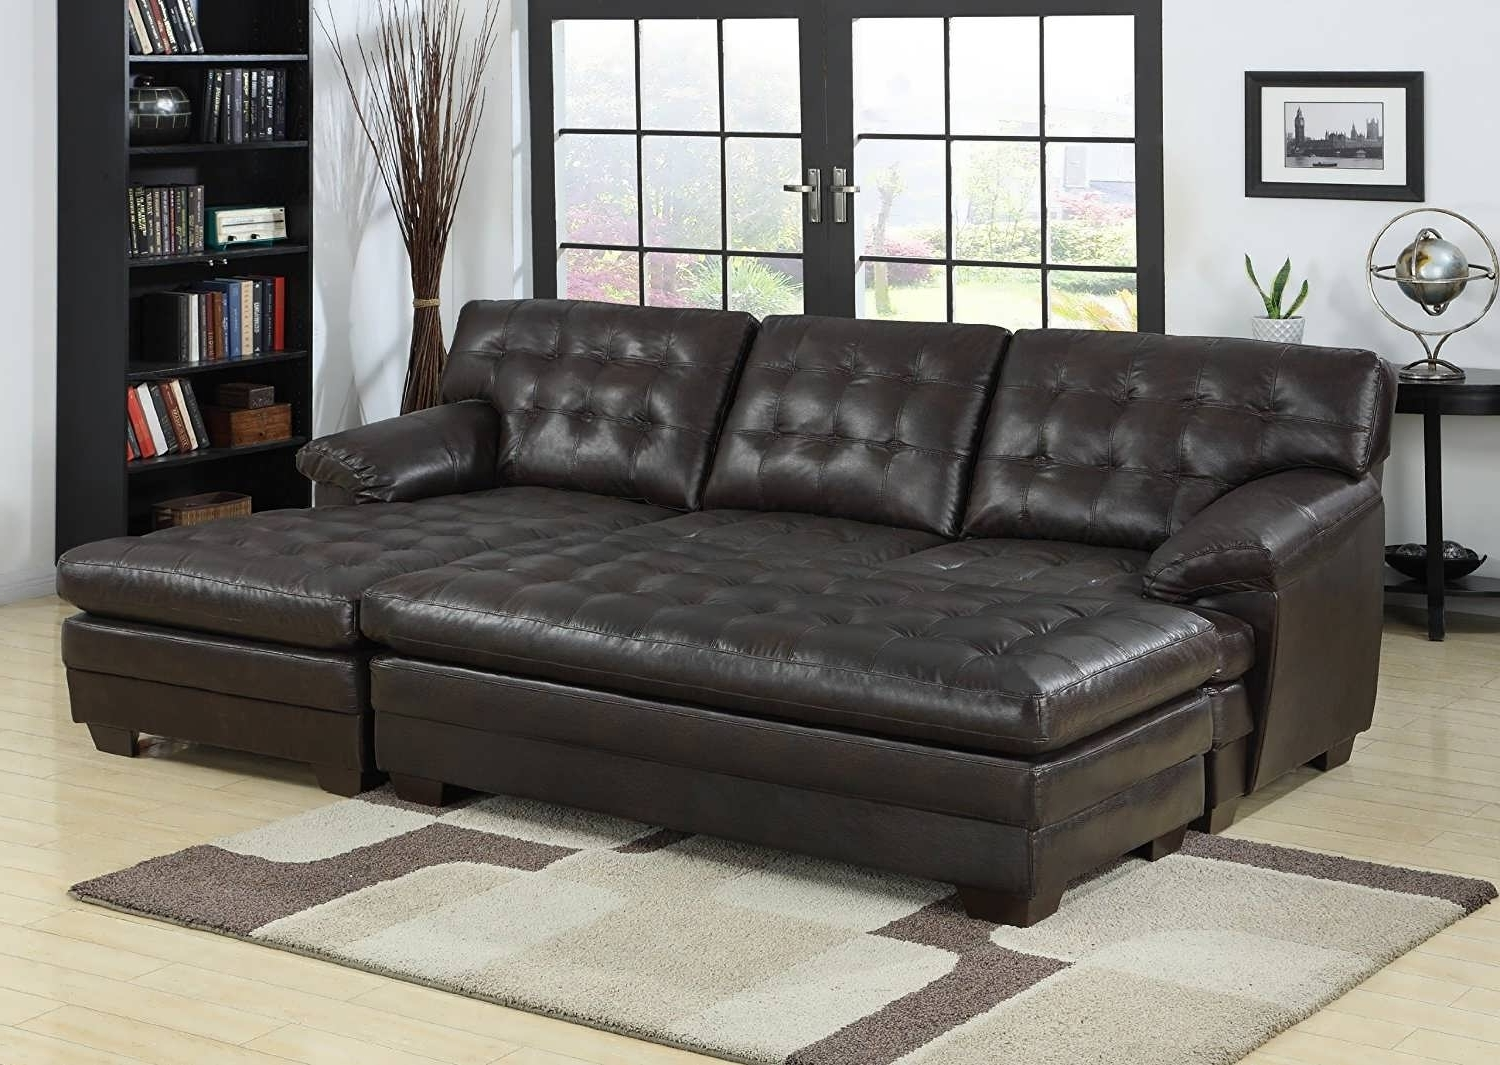 Chaise Couch Lounges Regarding Favorite Sofa : U Shaped Sectional Sofa Sectional Sofa With Chaise Grey (View 3 of 15)